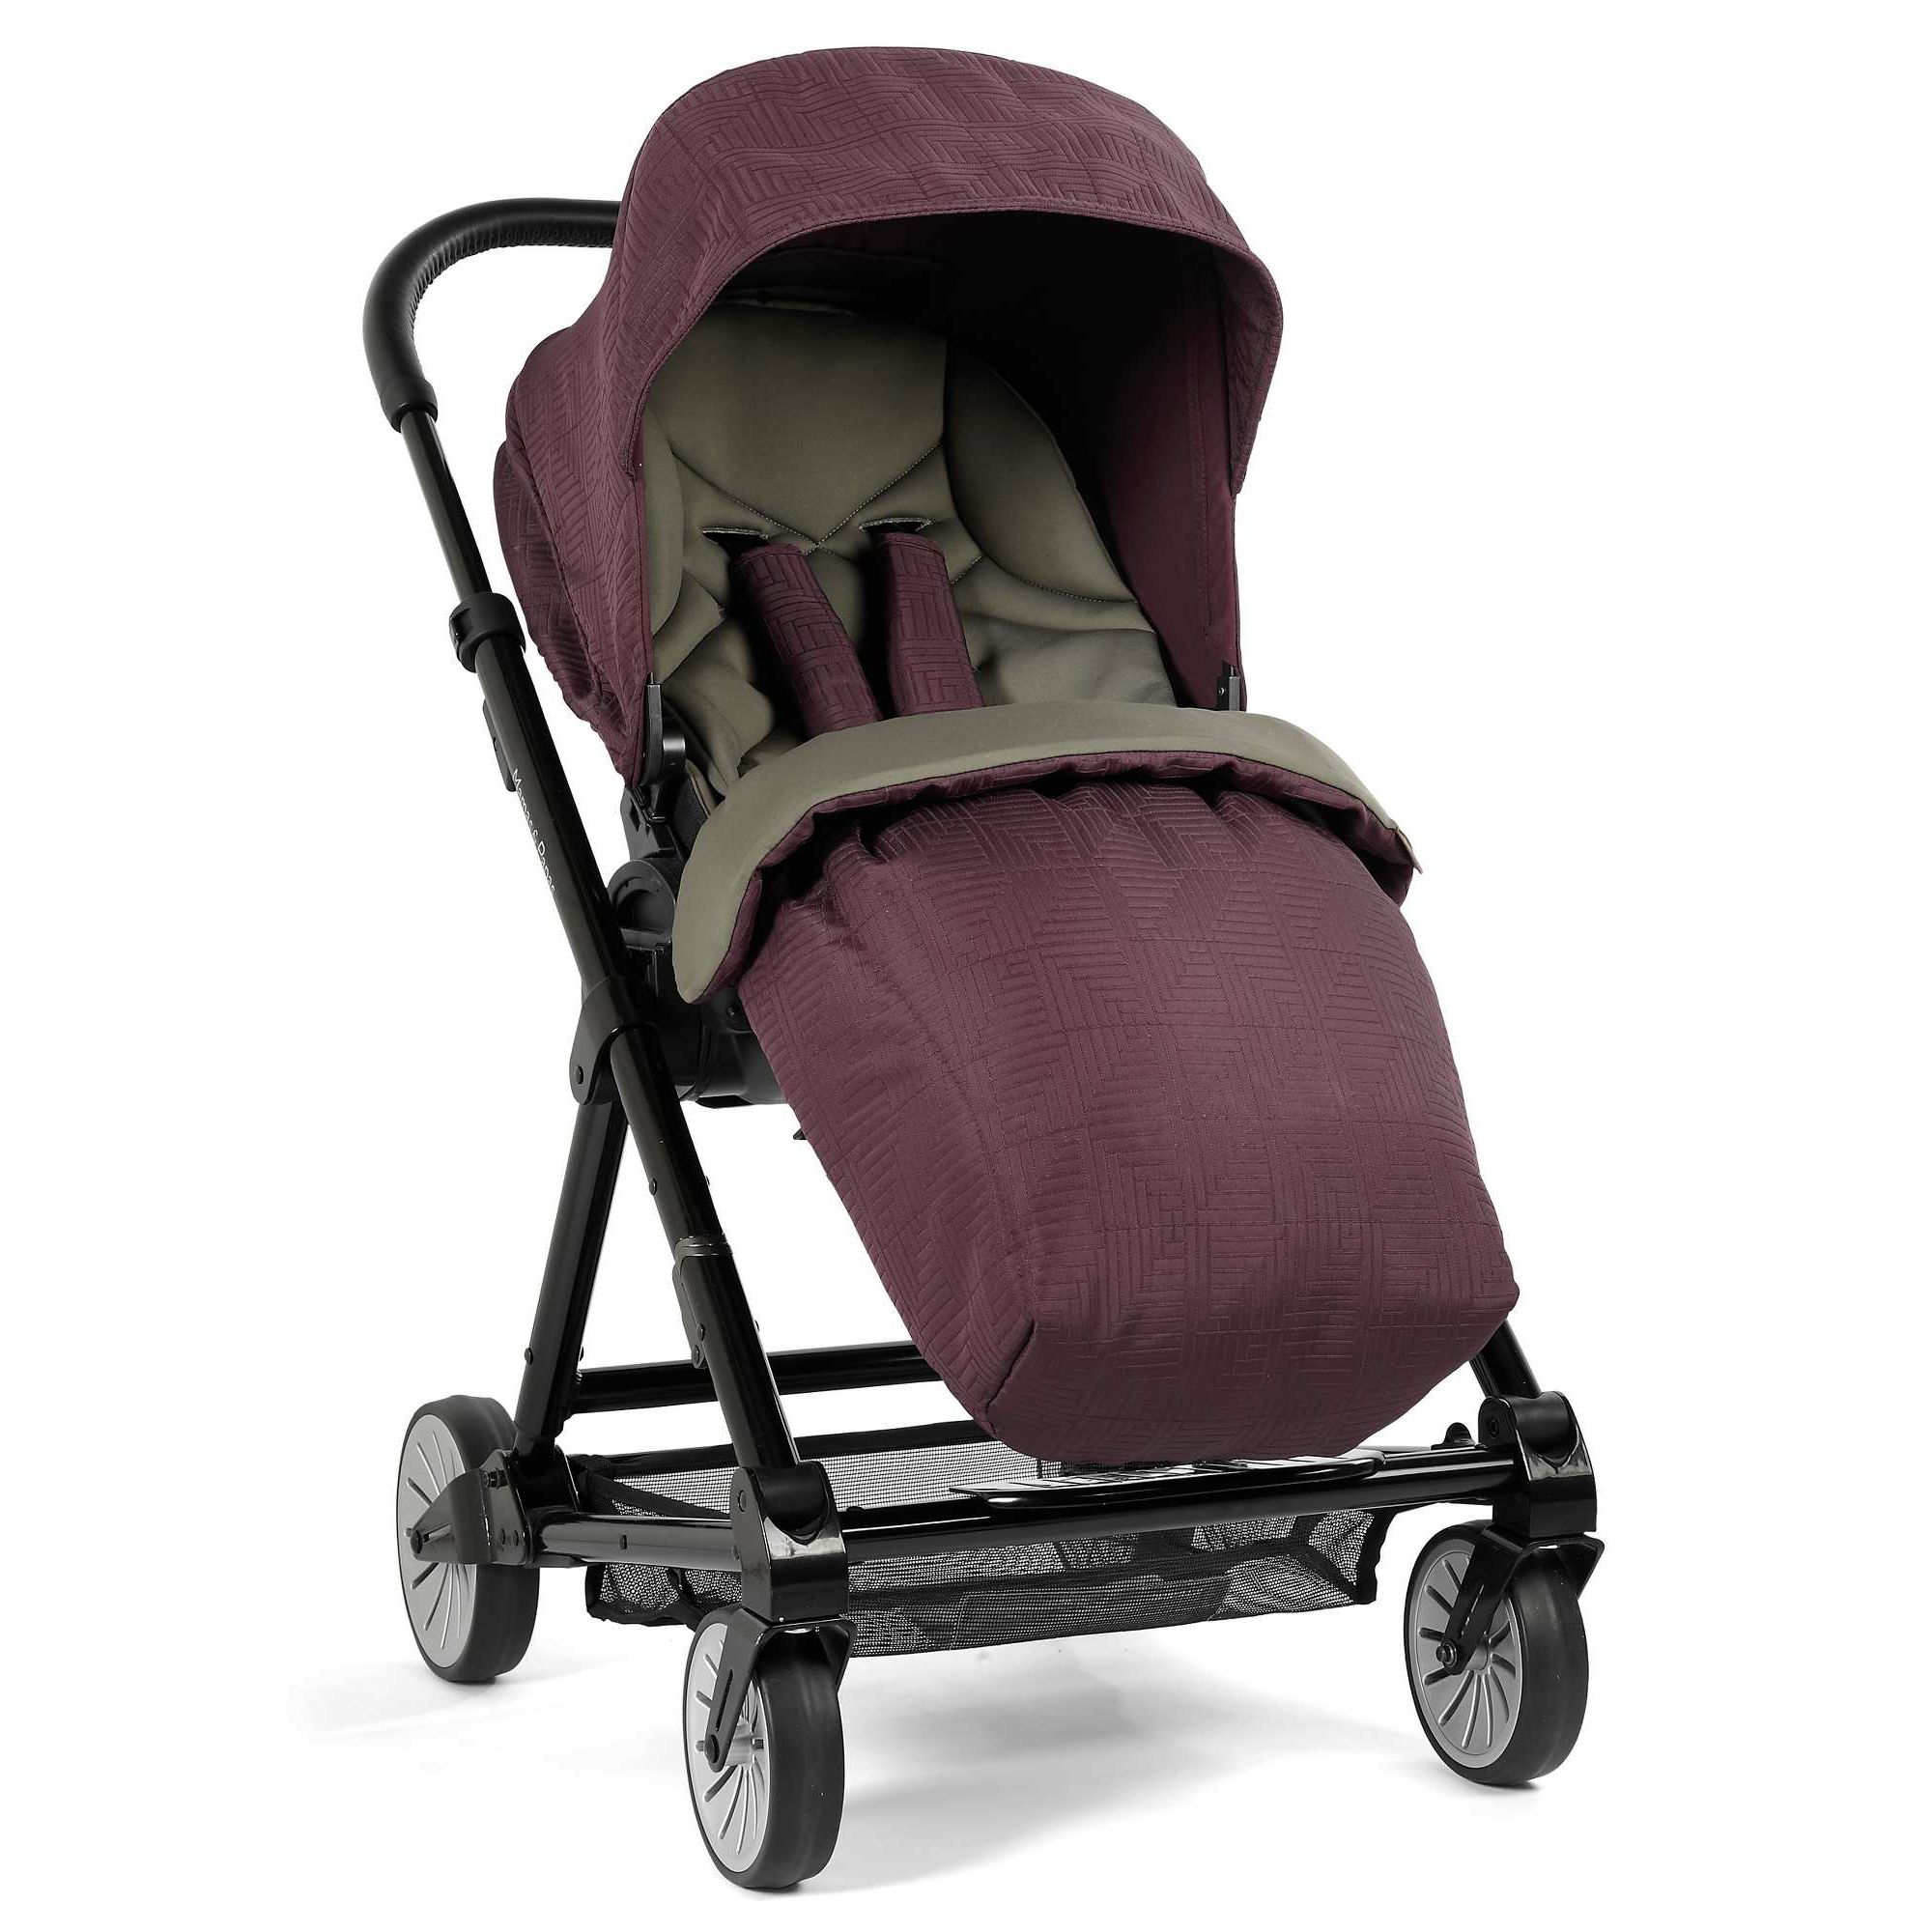 Mamas & Papas - Urbo Elite - Mulberry at Tesco Direct